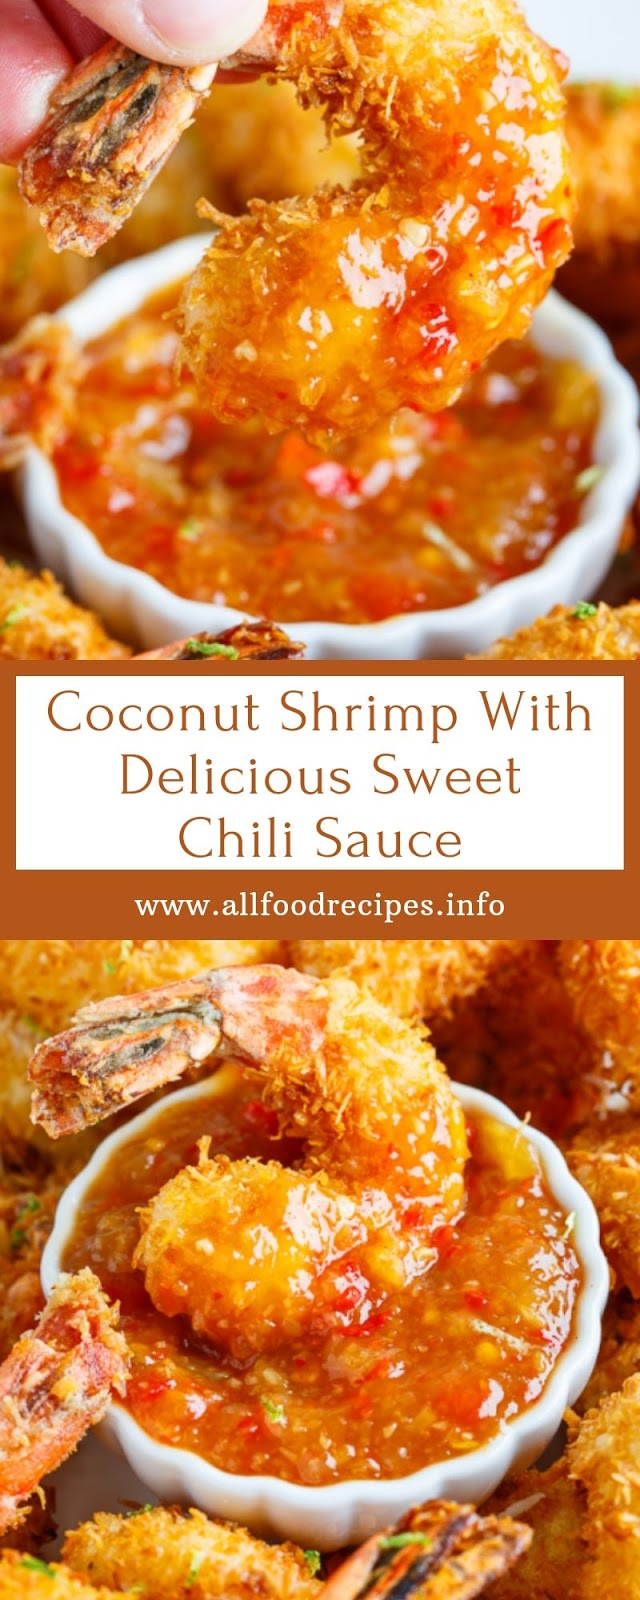 Coconut Shrimp With Delicious Sweet Chili Sauce